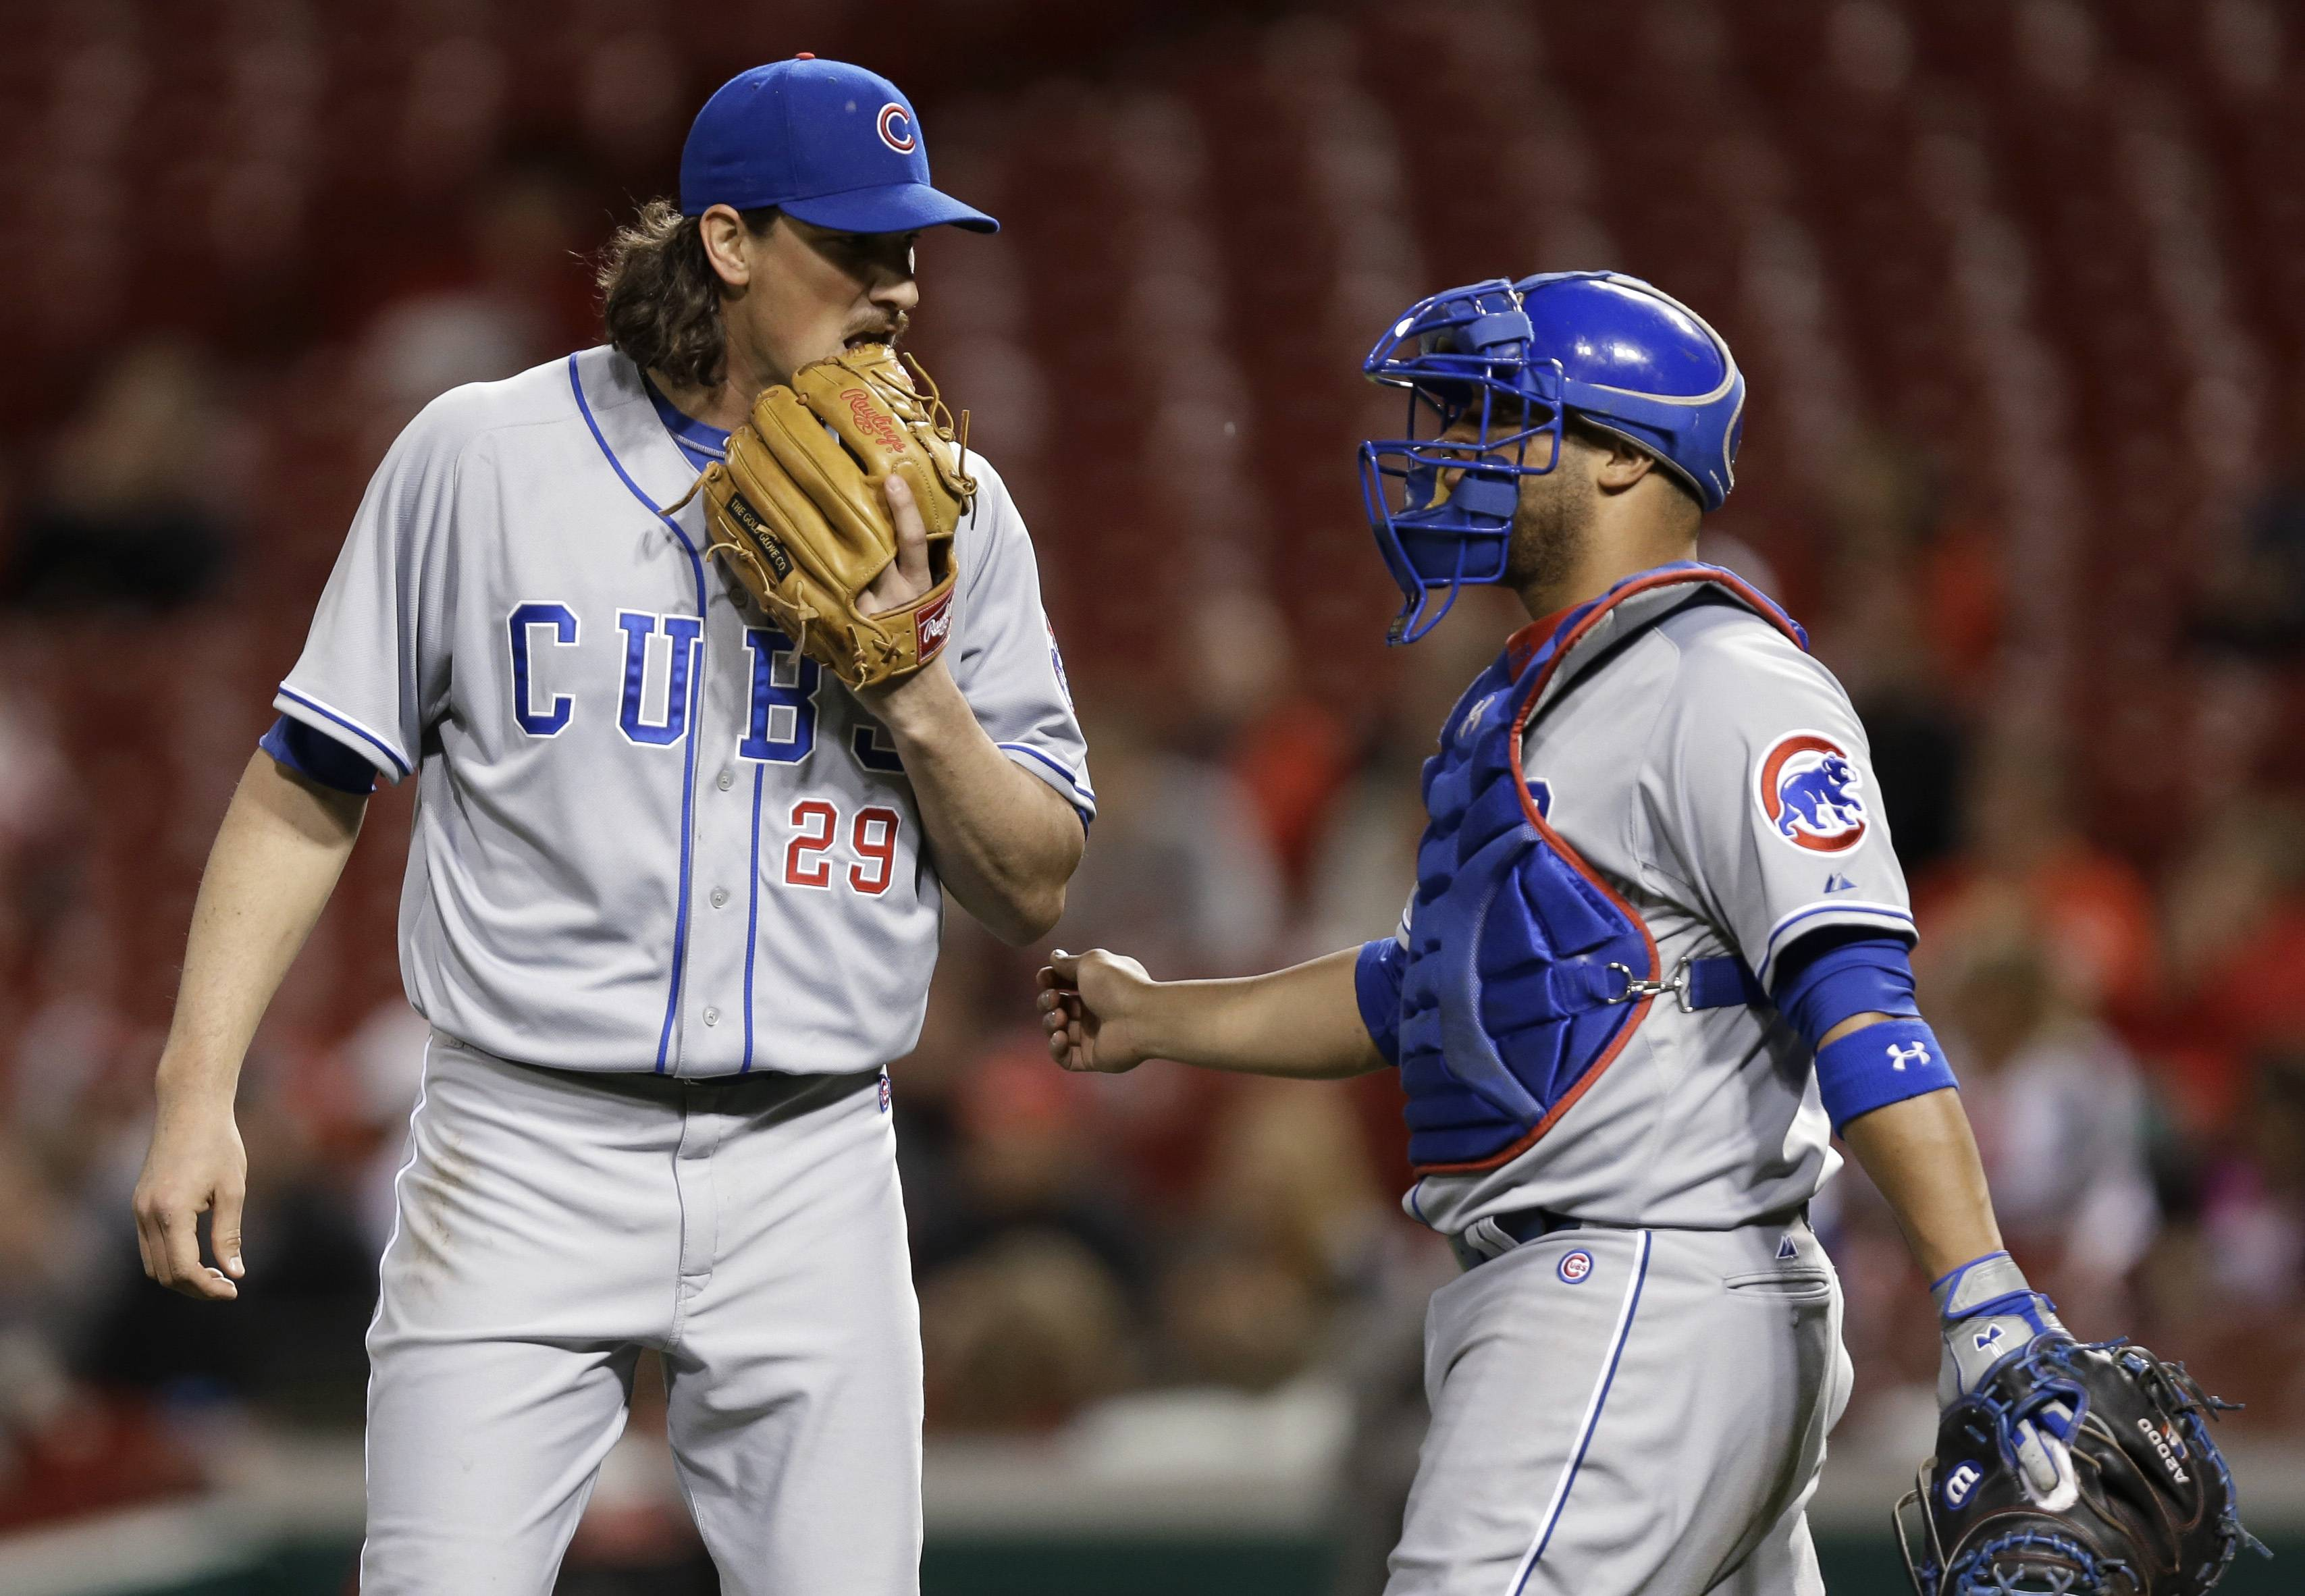 Chicago Cubs starting pitcher Jeff Samardzija (29) talks with catcher Welington Castillo in the sixth inning of a baseball game Tuesday against the Cincinnati Reds in Cincinnati.